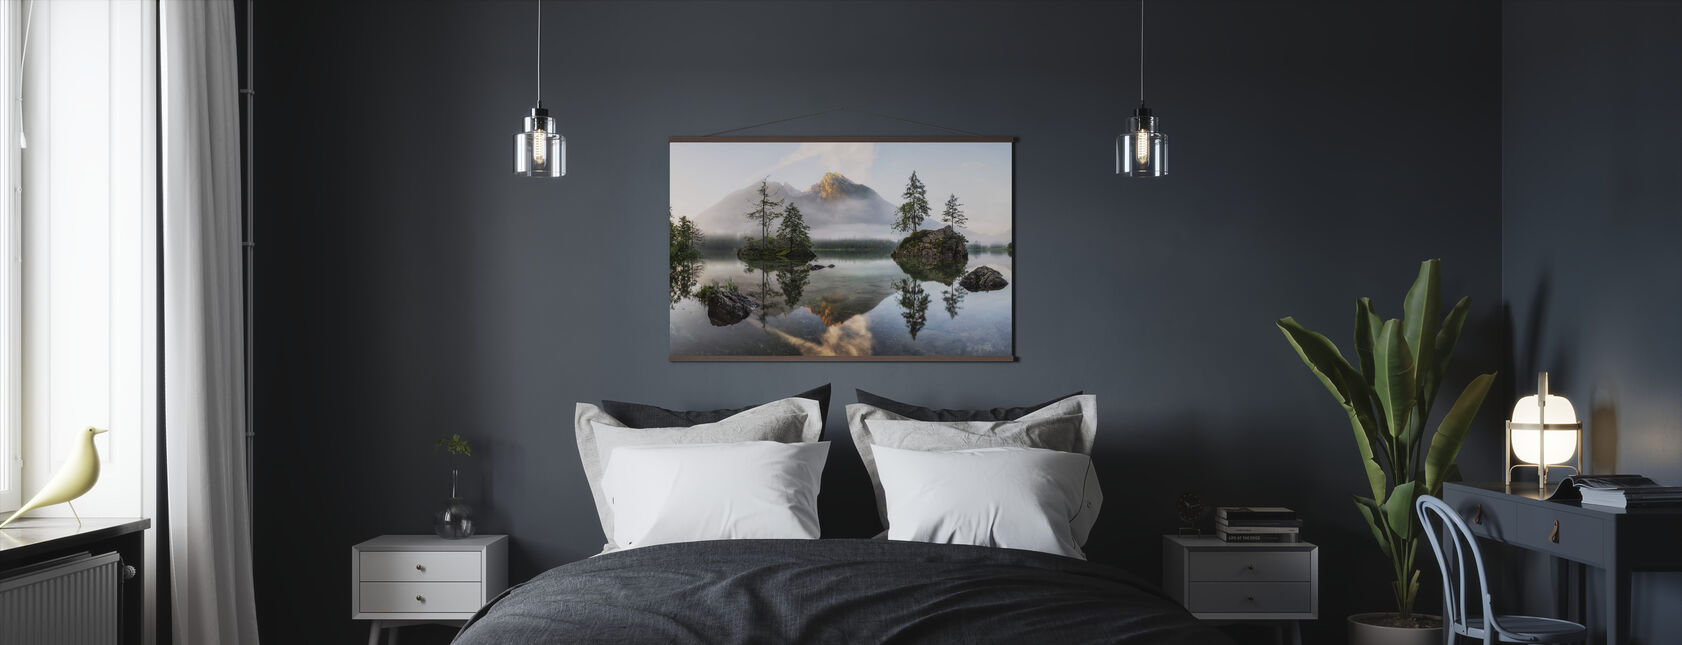 Nature's Awakening - Poster - Bedroom